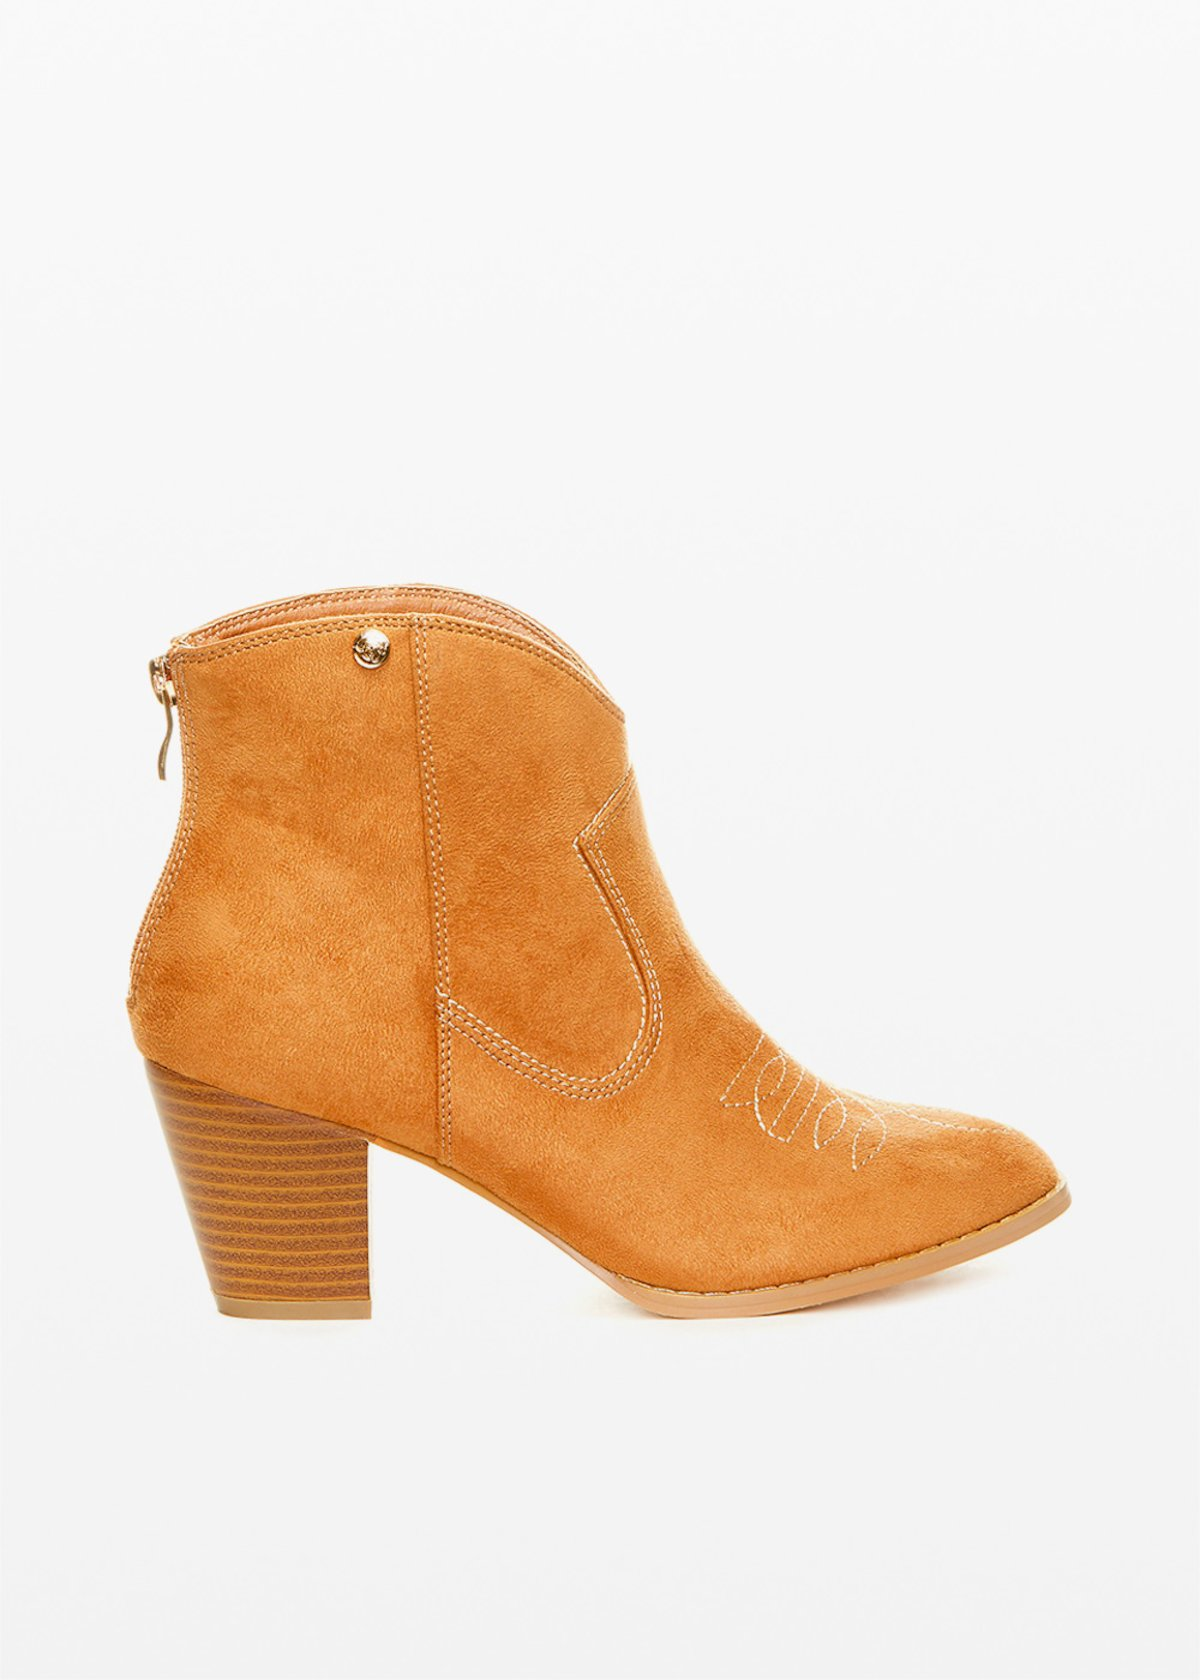 Faux suede Shila boots camperos model - Lion - Woman - Category image